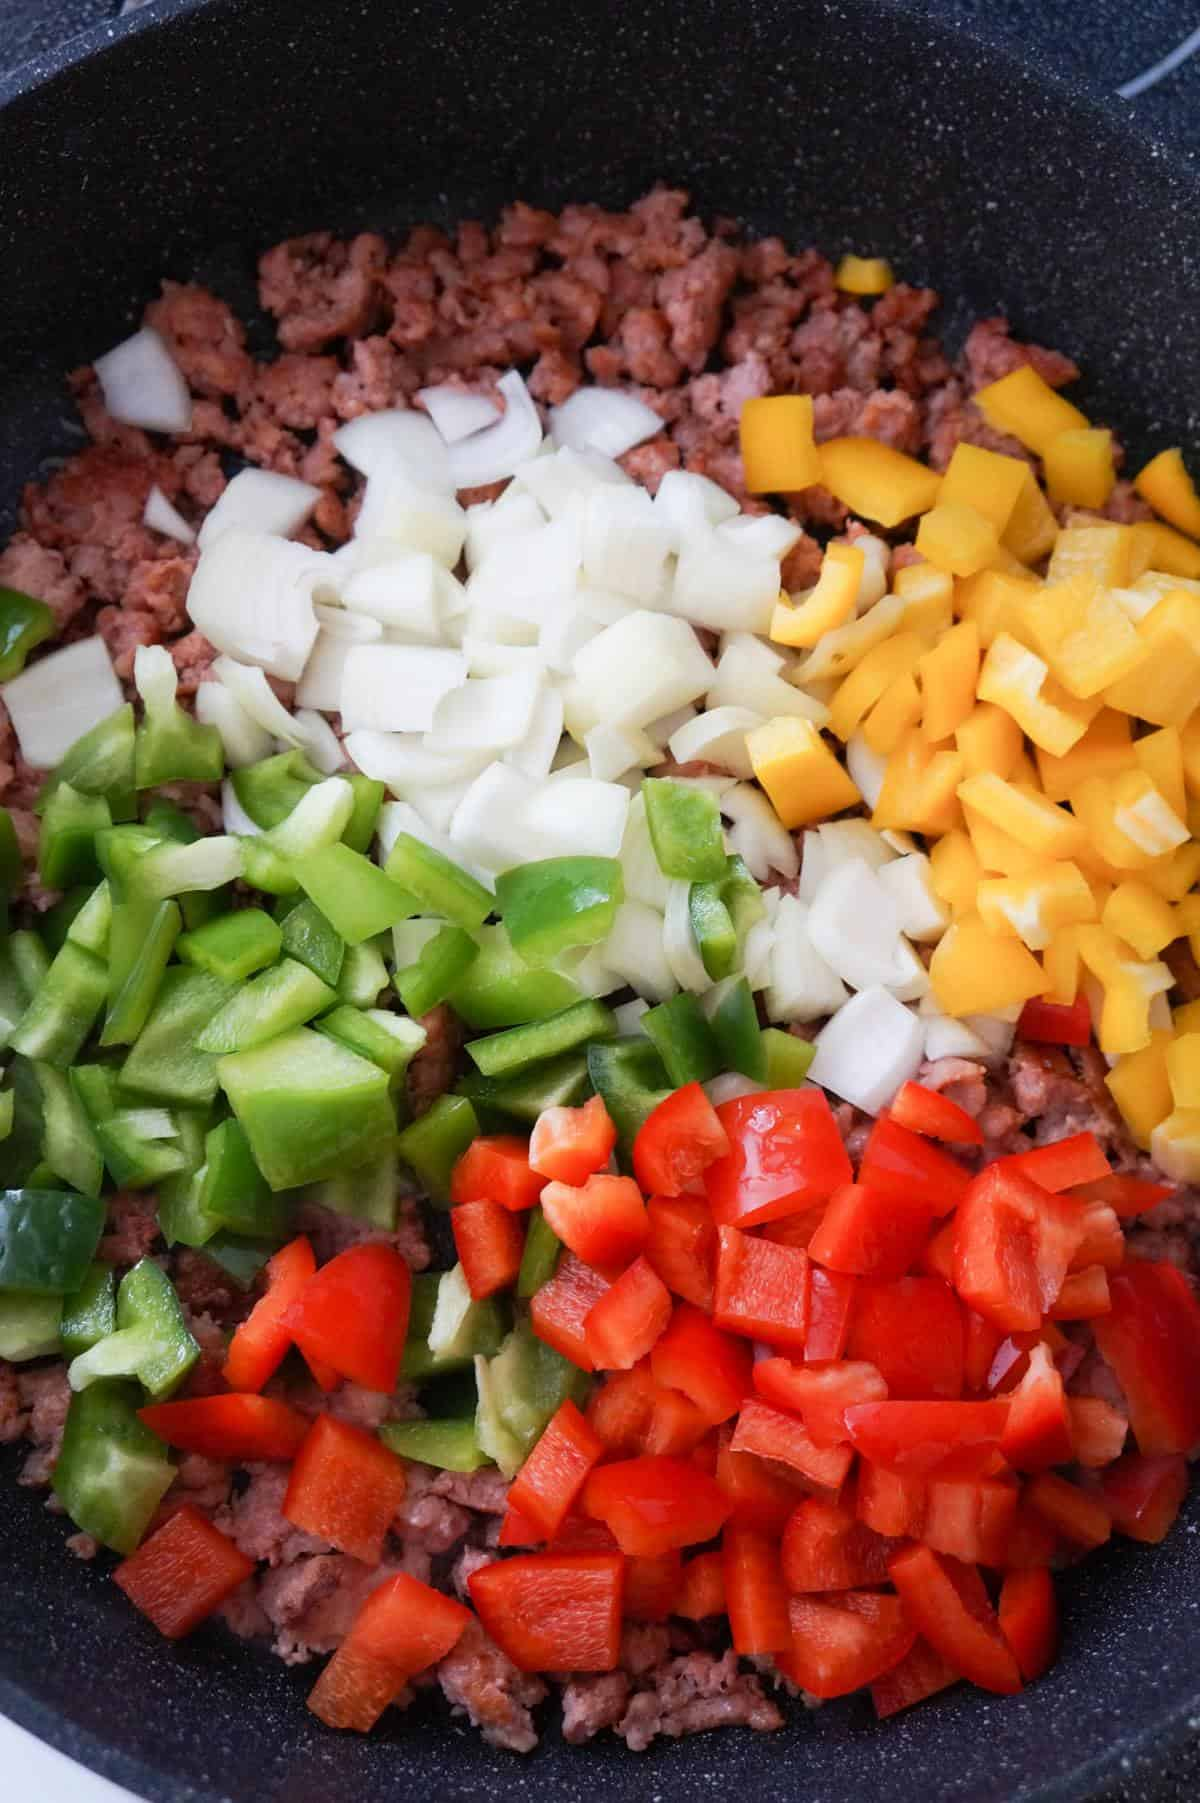 diced onion and diced peppers on top of ground sausage meat in a saute pan